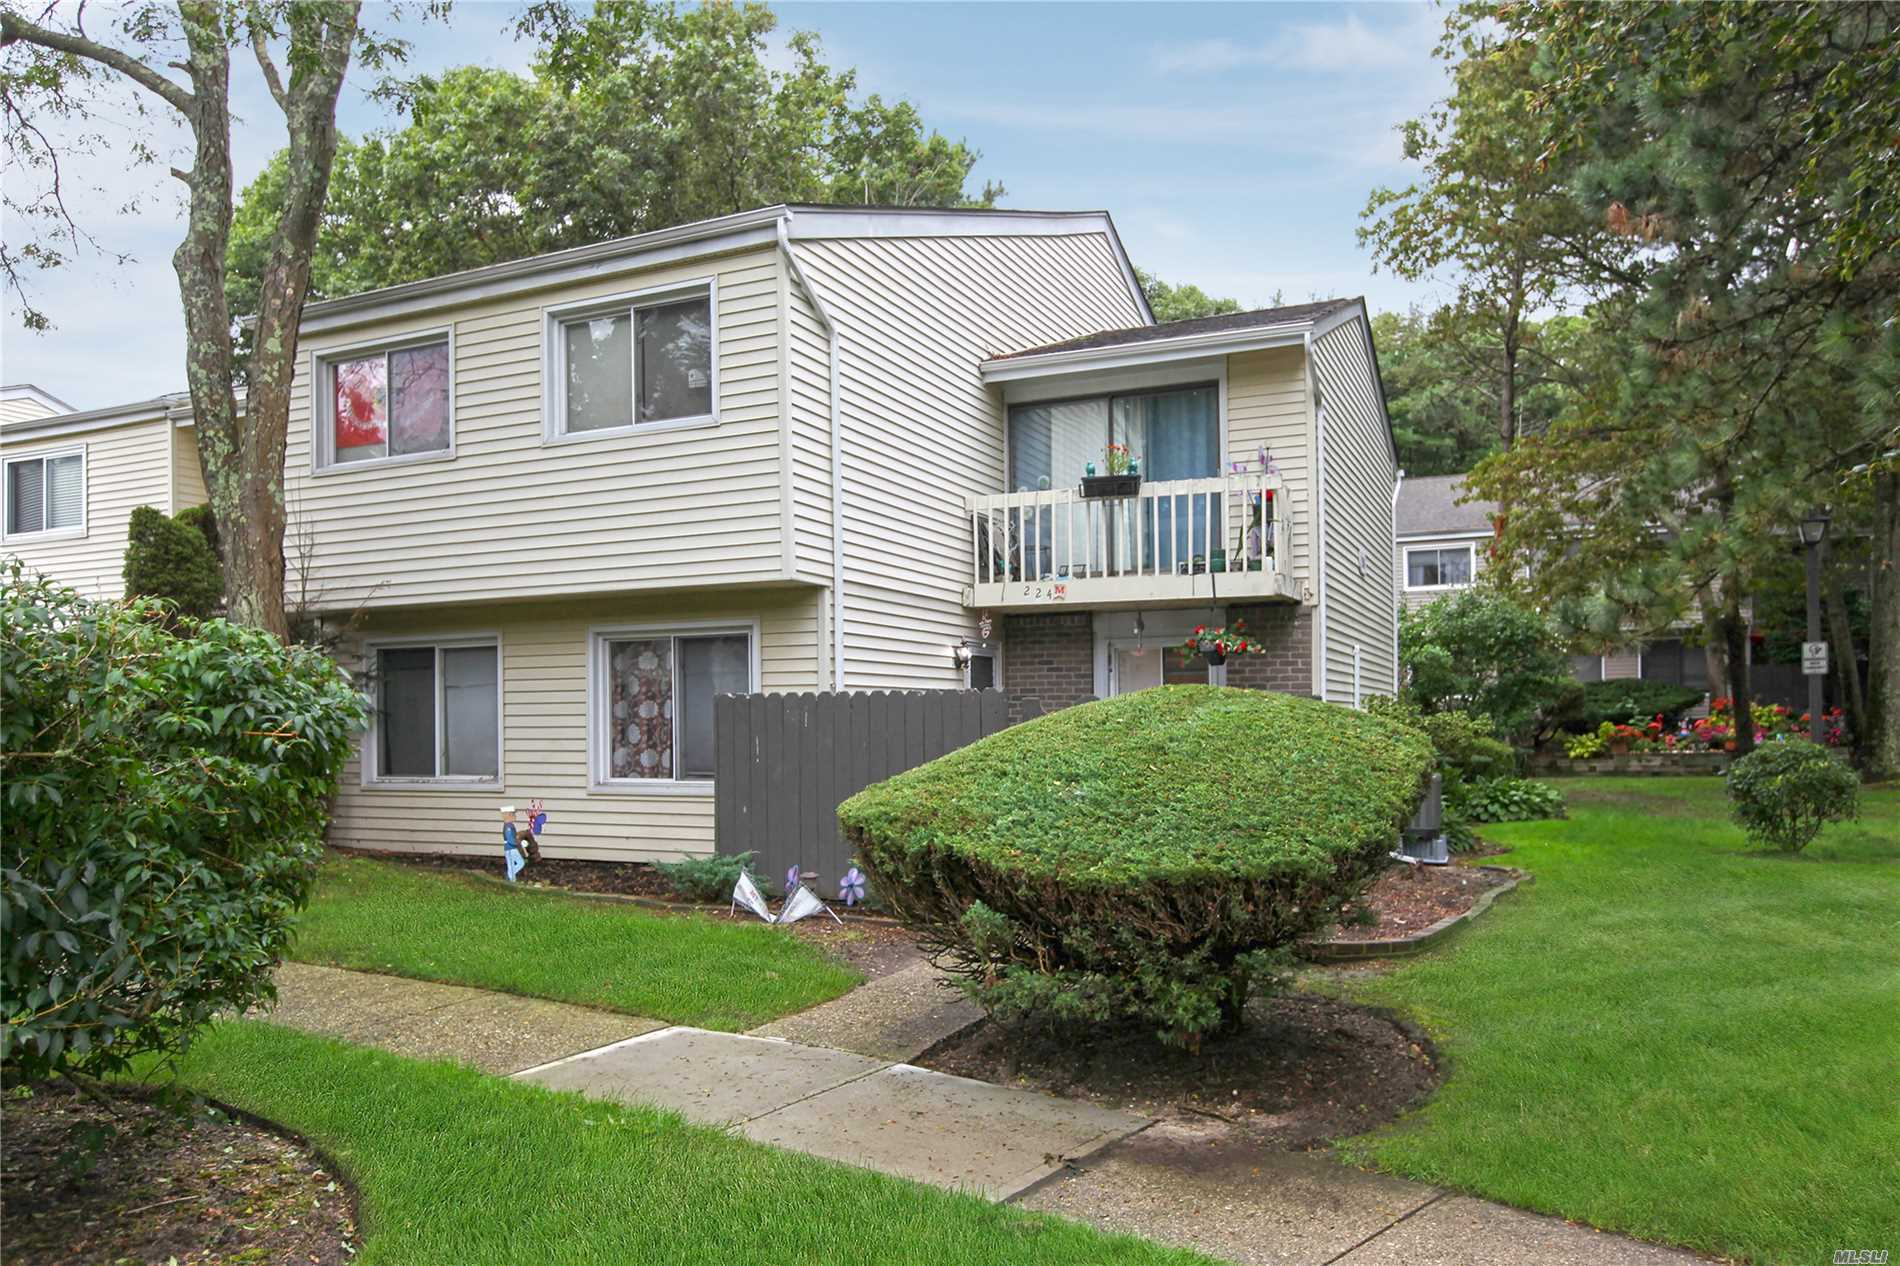 Property for sale at 224 M Springmeadow Dr, Holbrook,  NY 11741